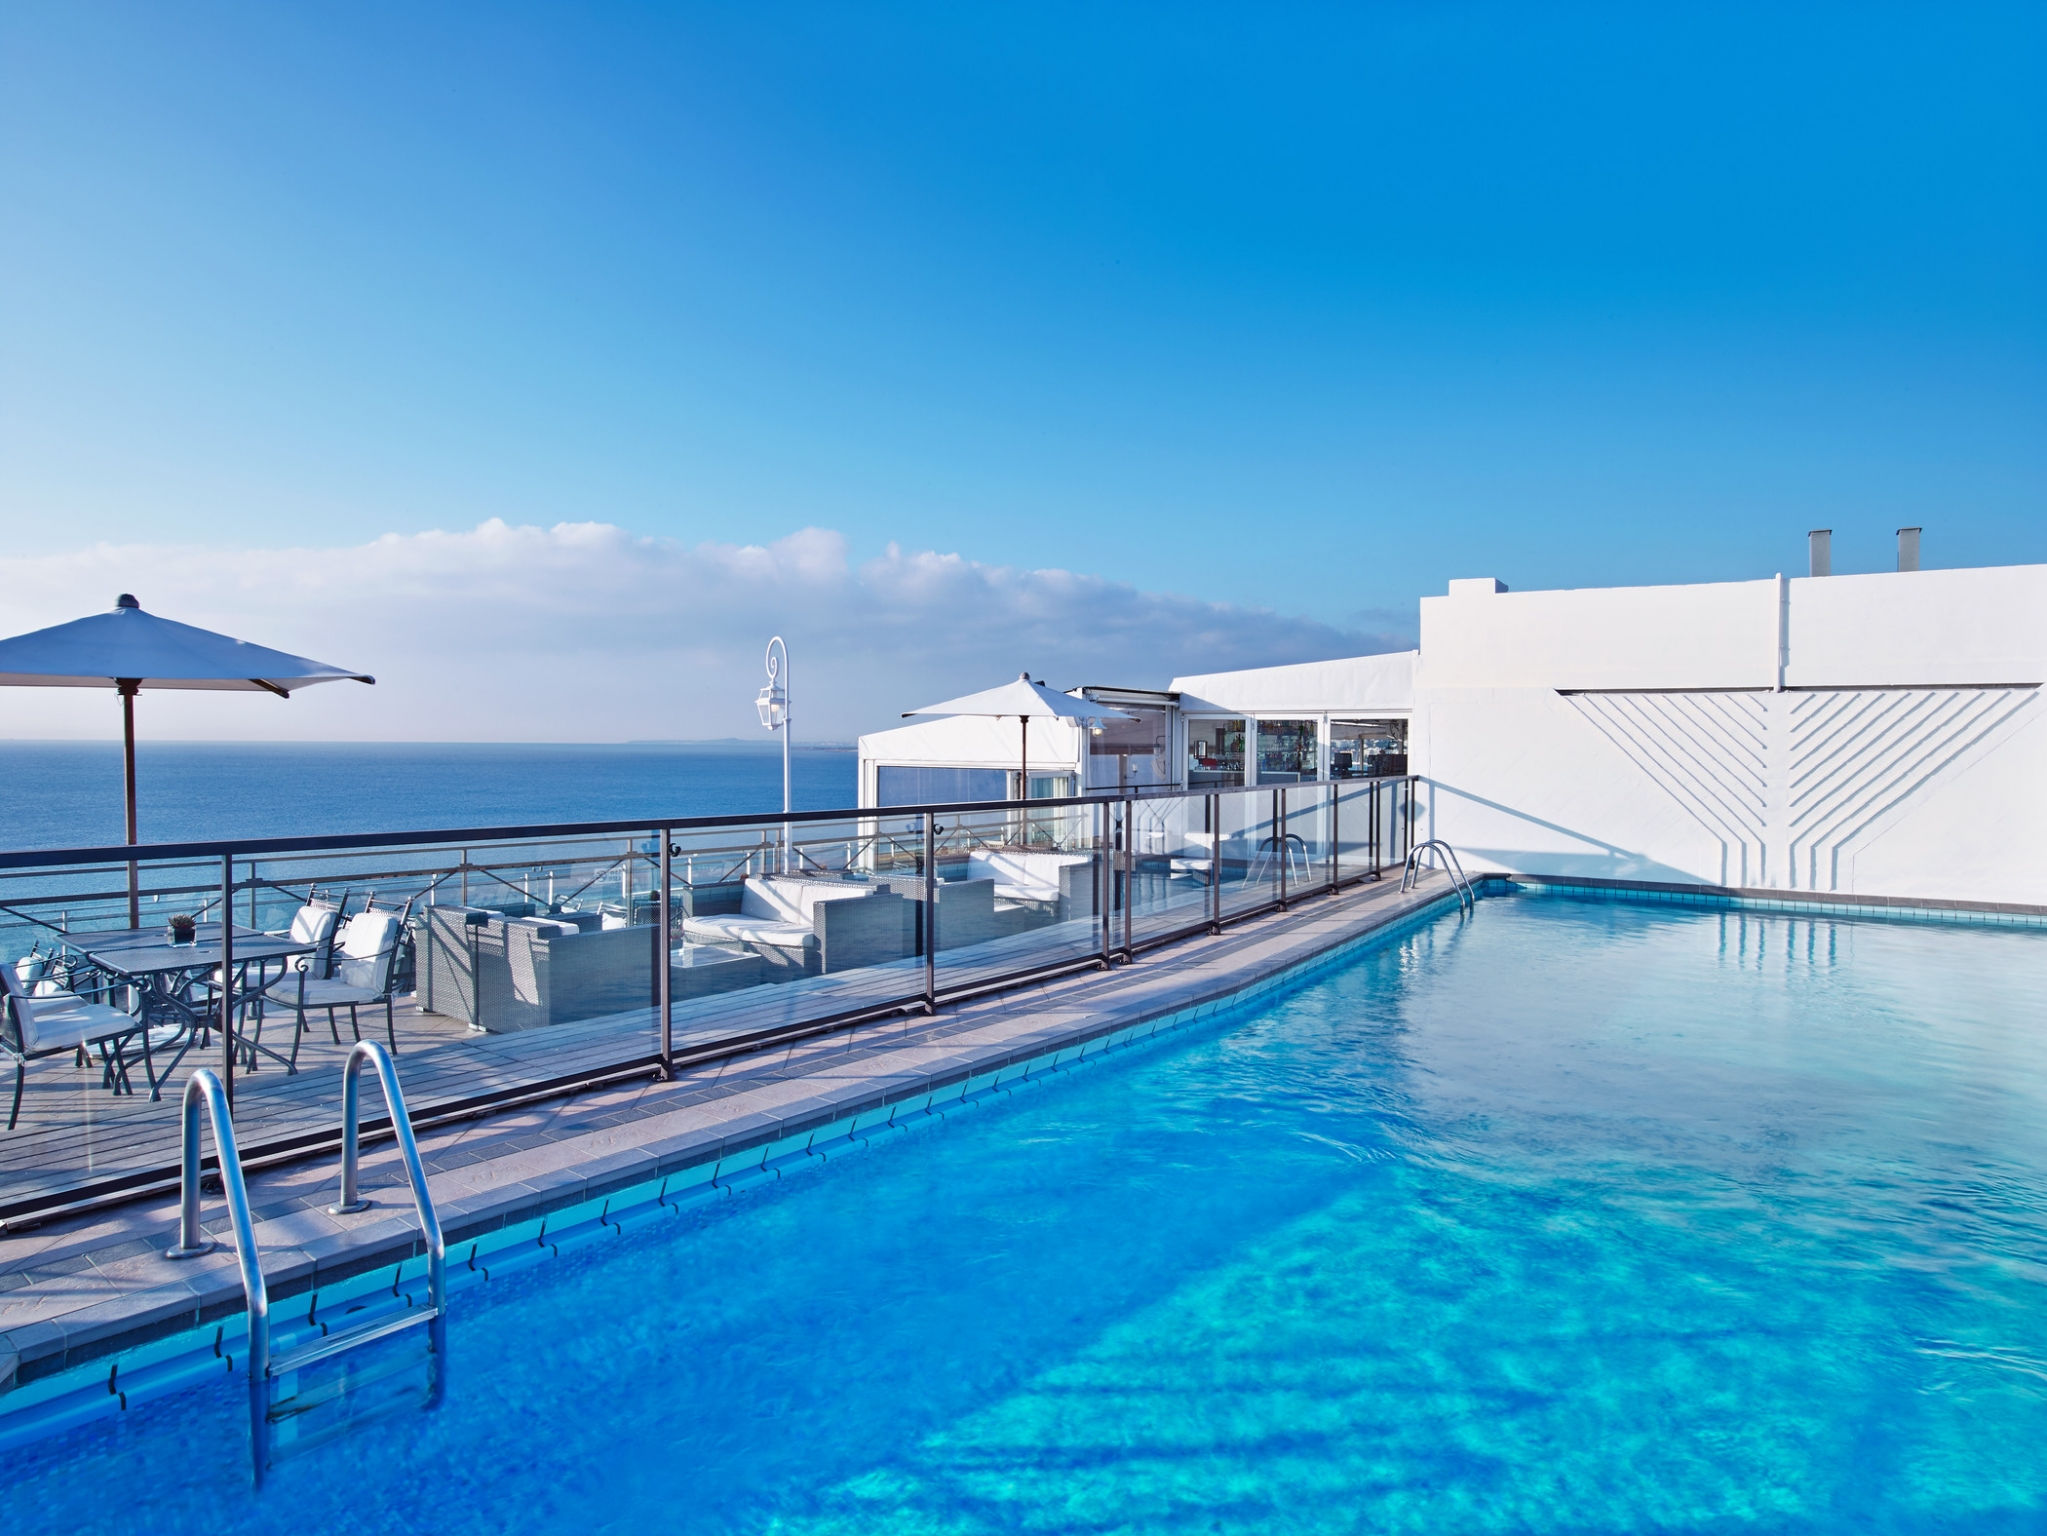 Toit Terrasse Nice Centre Hotel Features And Activities | Le Méridien Nice